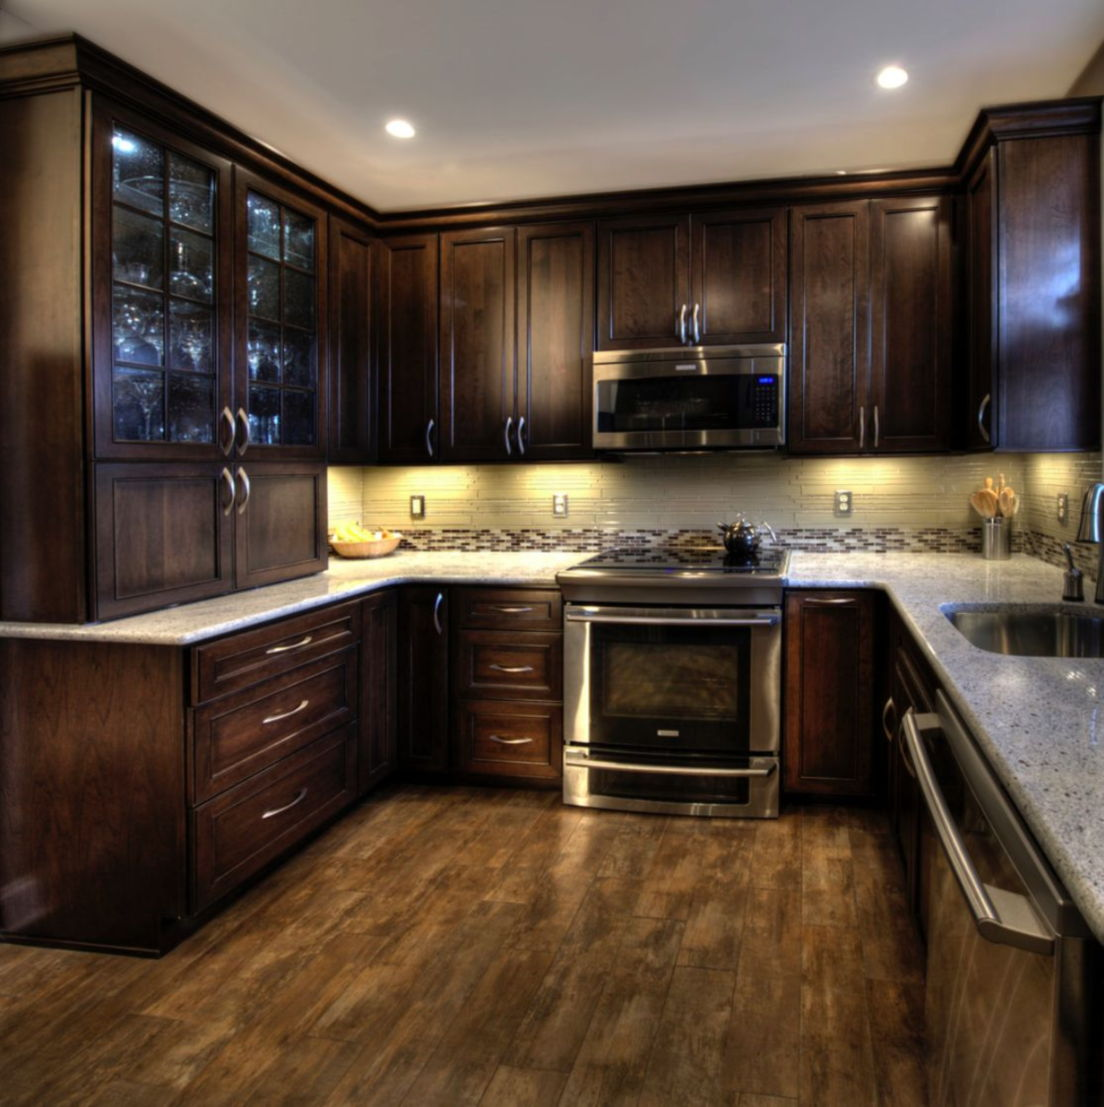 25+ Amazing Small Kitchen Remodel Ideas that Perfect for ... on Small Kitchen Renovation  id=18566